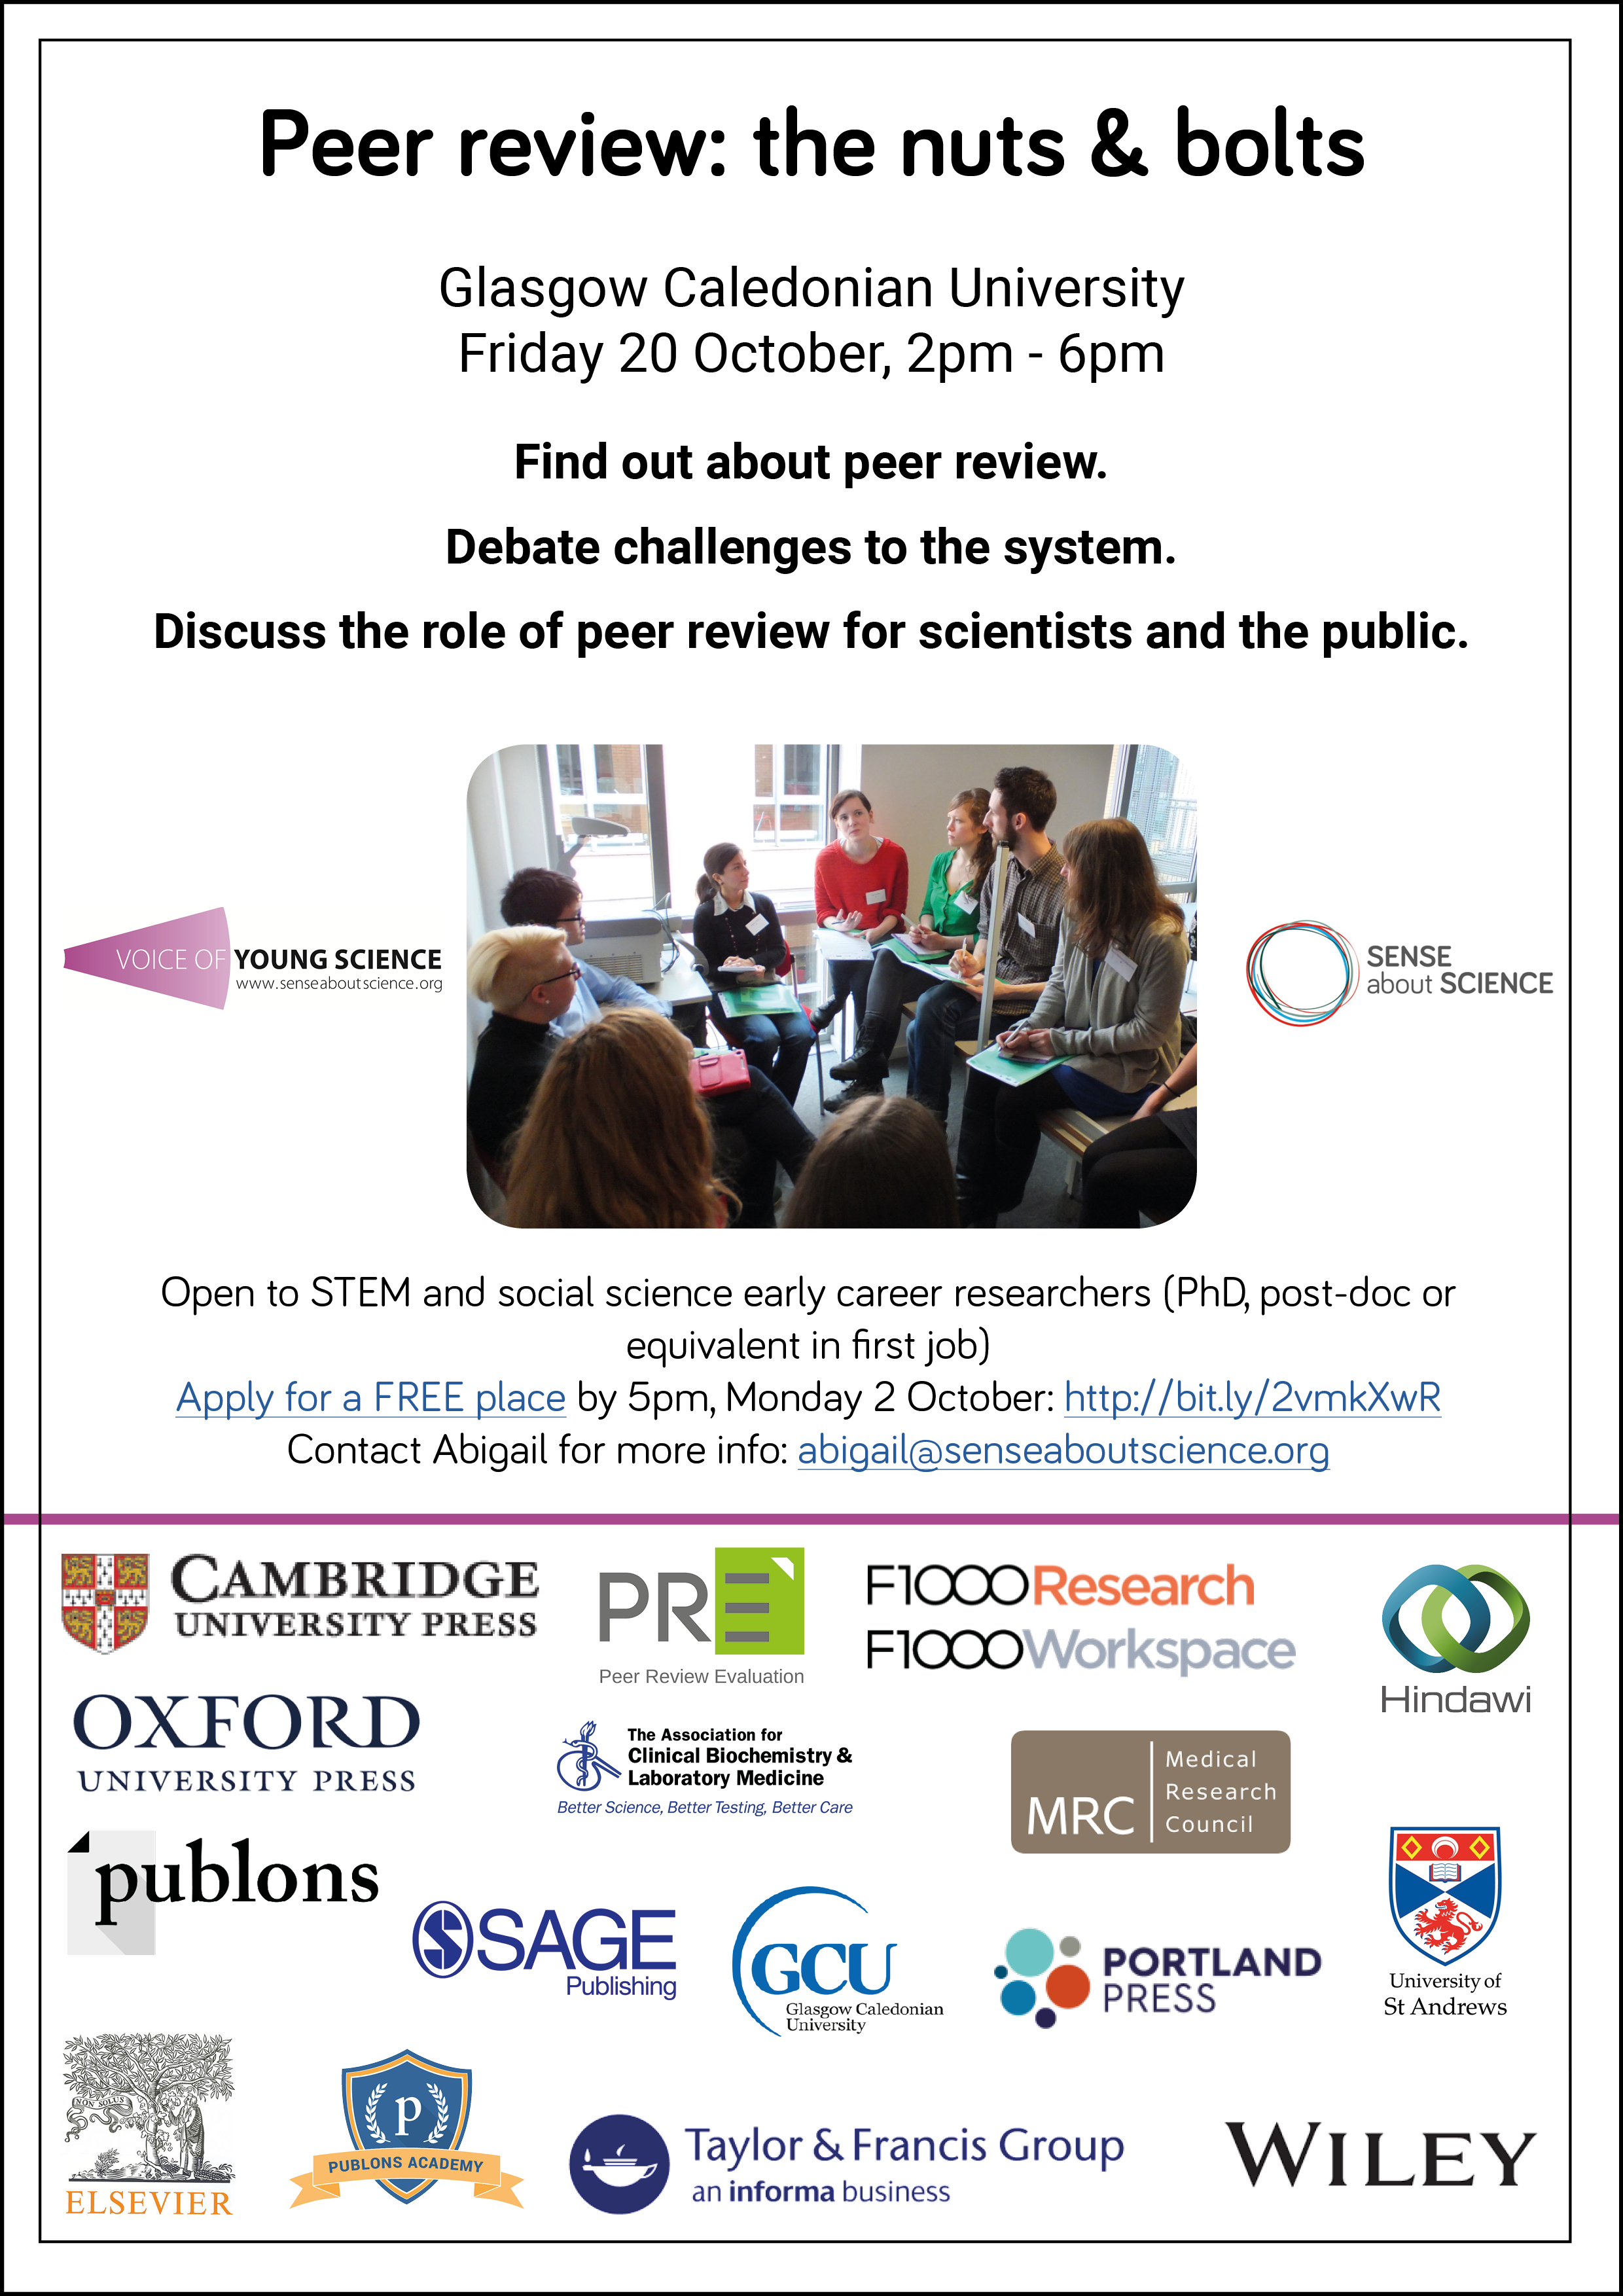 Peer review: the nuts & bolts workshop 20 October, Glasgow Caledonian University